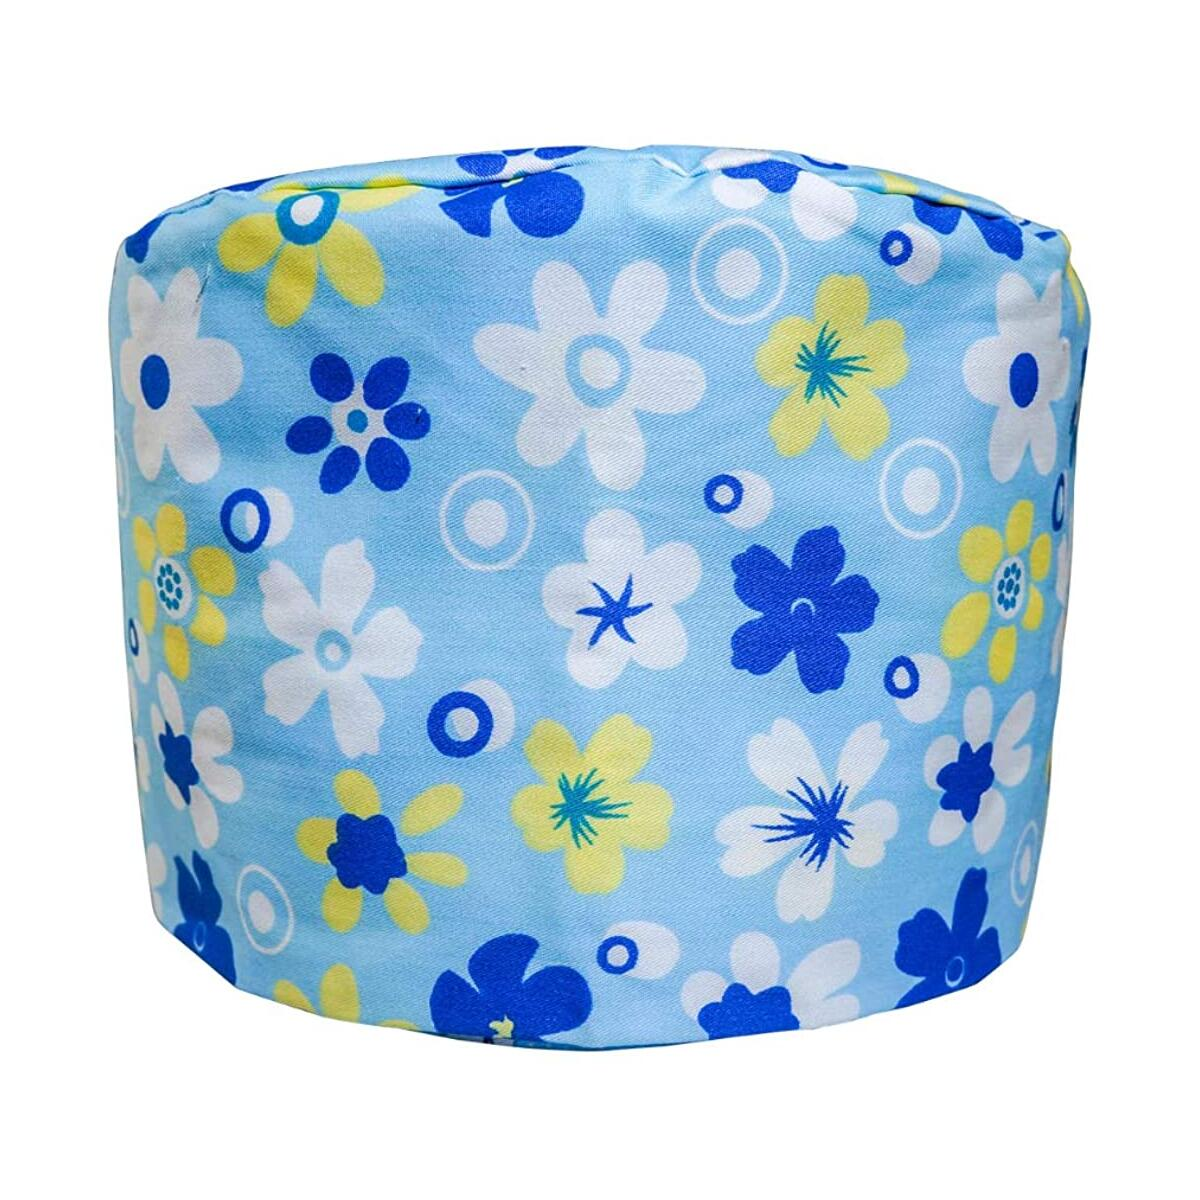 Working Cap with Button and Sweatband Adjustable Tie Back Bouffant Hats (Color 5 - Flowers)